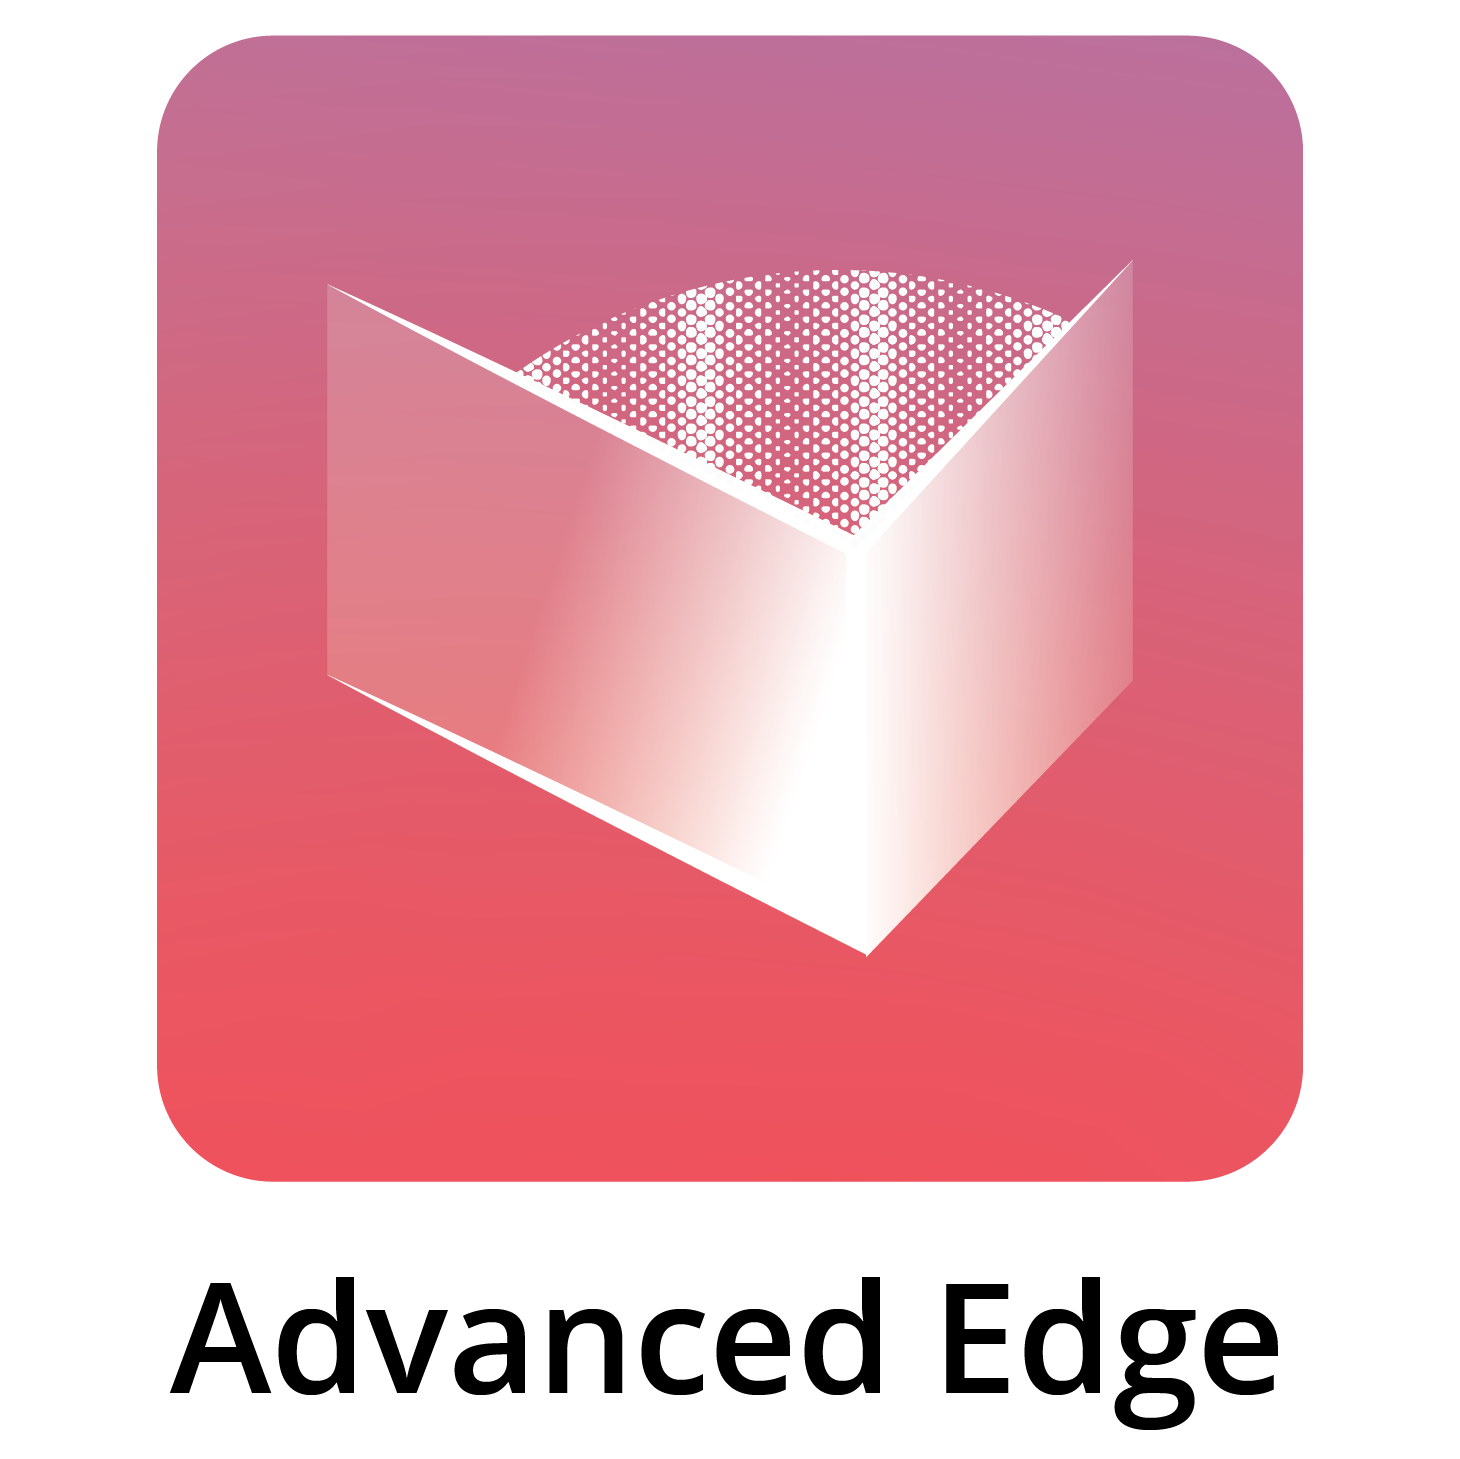 Edge Support In Bed Icon